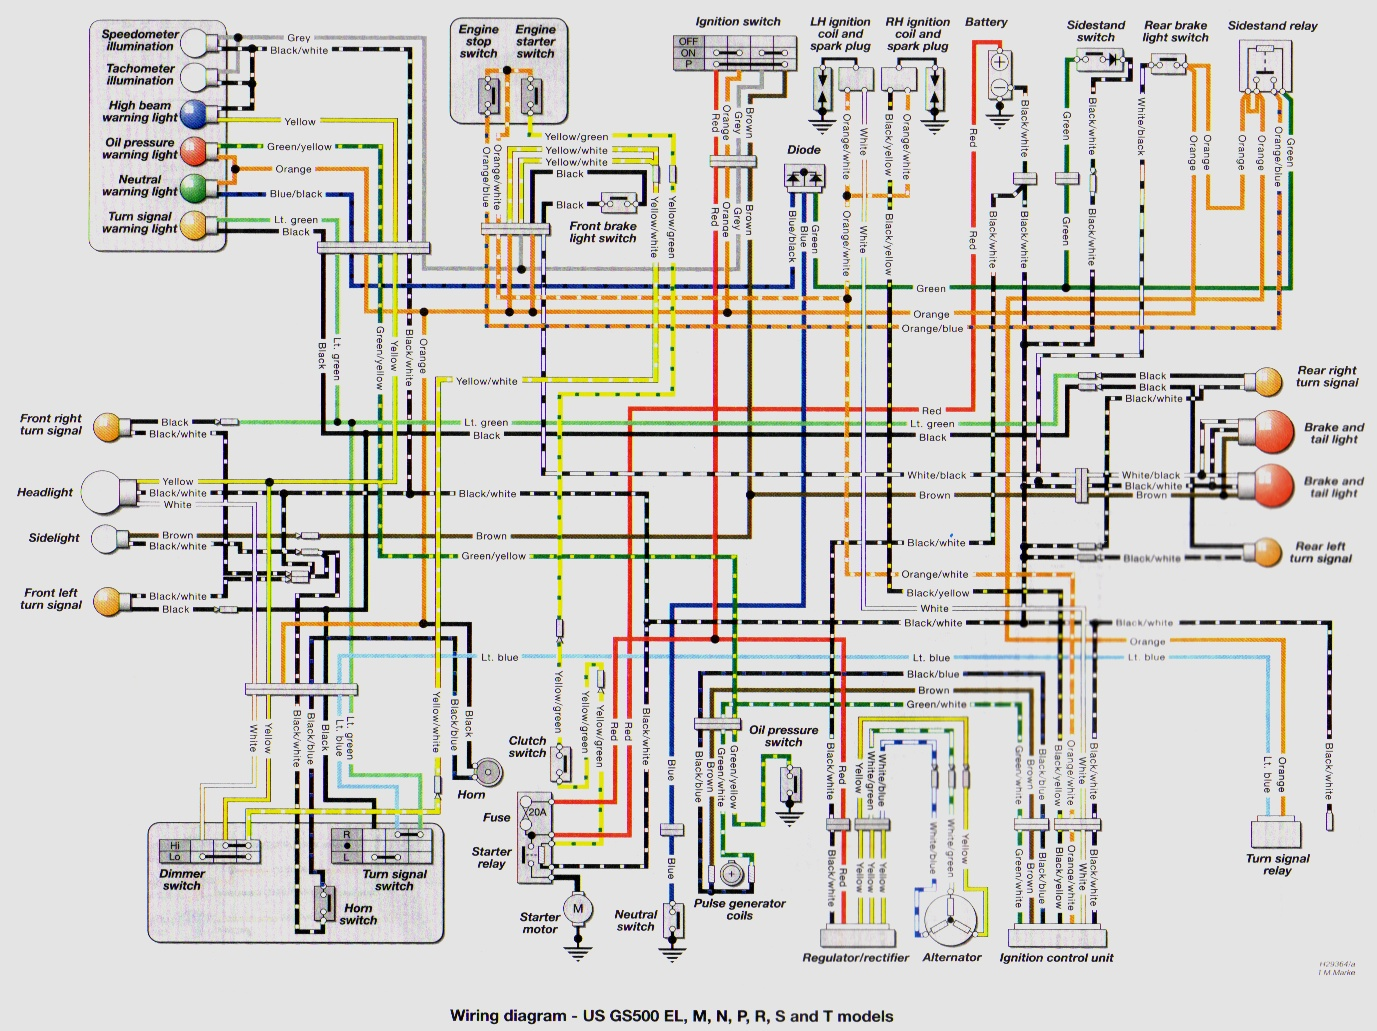 Suzuki Gs500 Wiring Diagram Suzuki Gs500f Wiring Diagram - Wiring ...